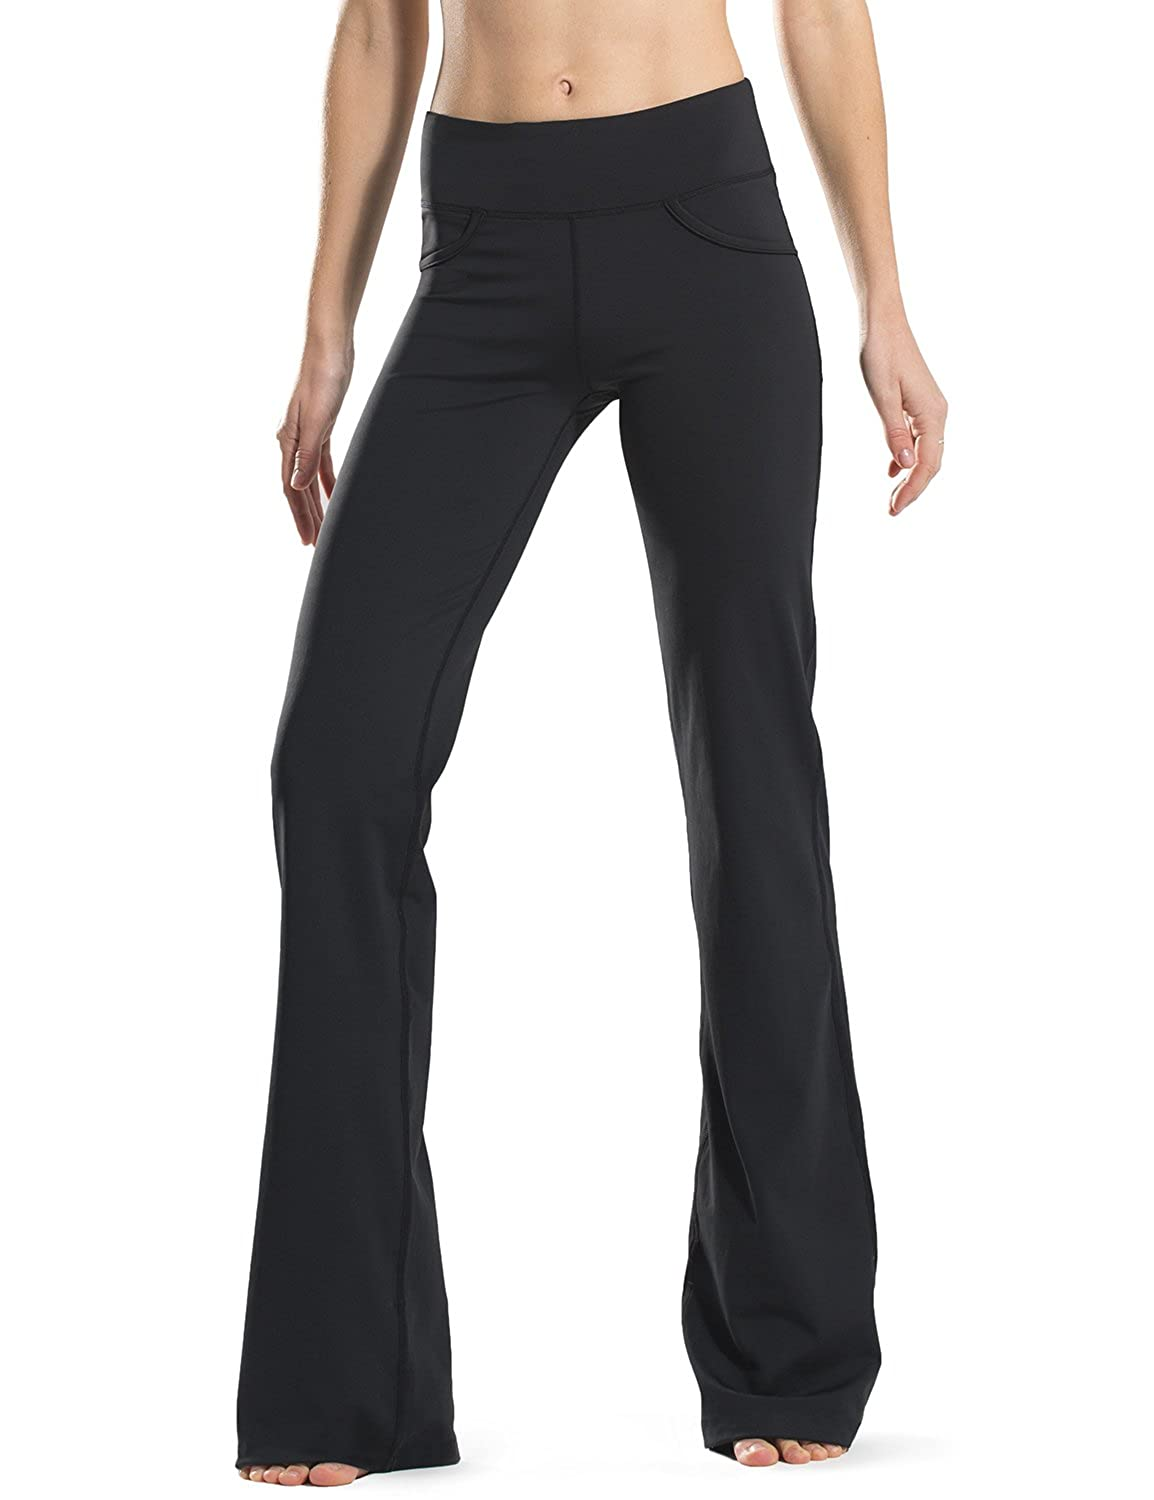 Safort Bootcut Yoga Trousers Women 5'3 -6' Tall, Four Pockets, Long Bootleg, Flare Pant, Black